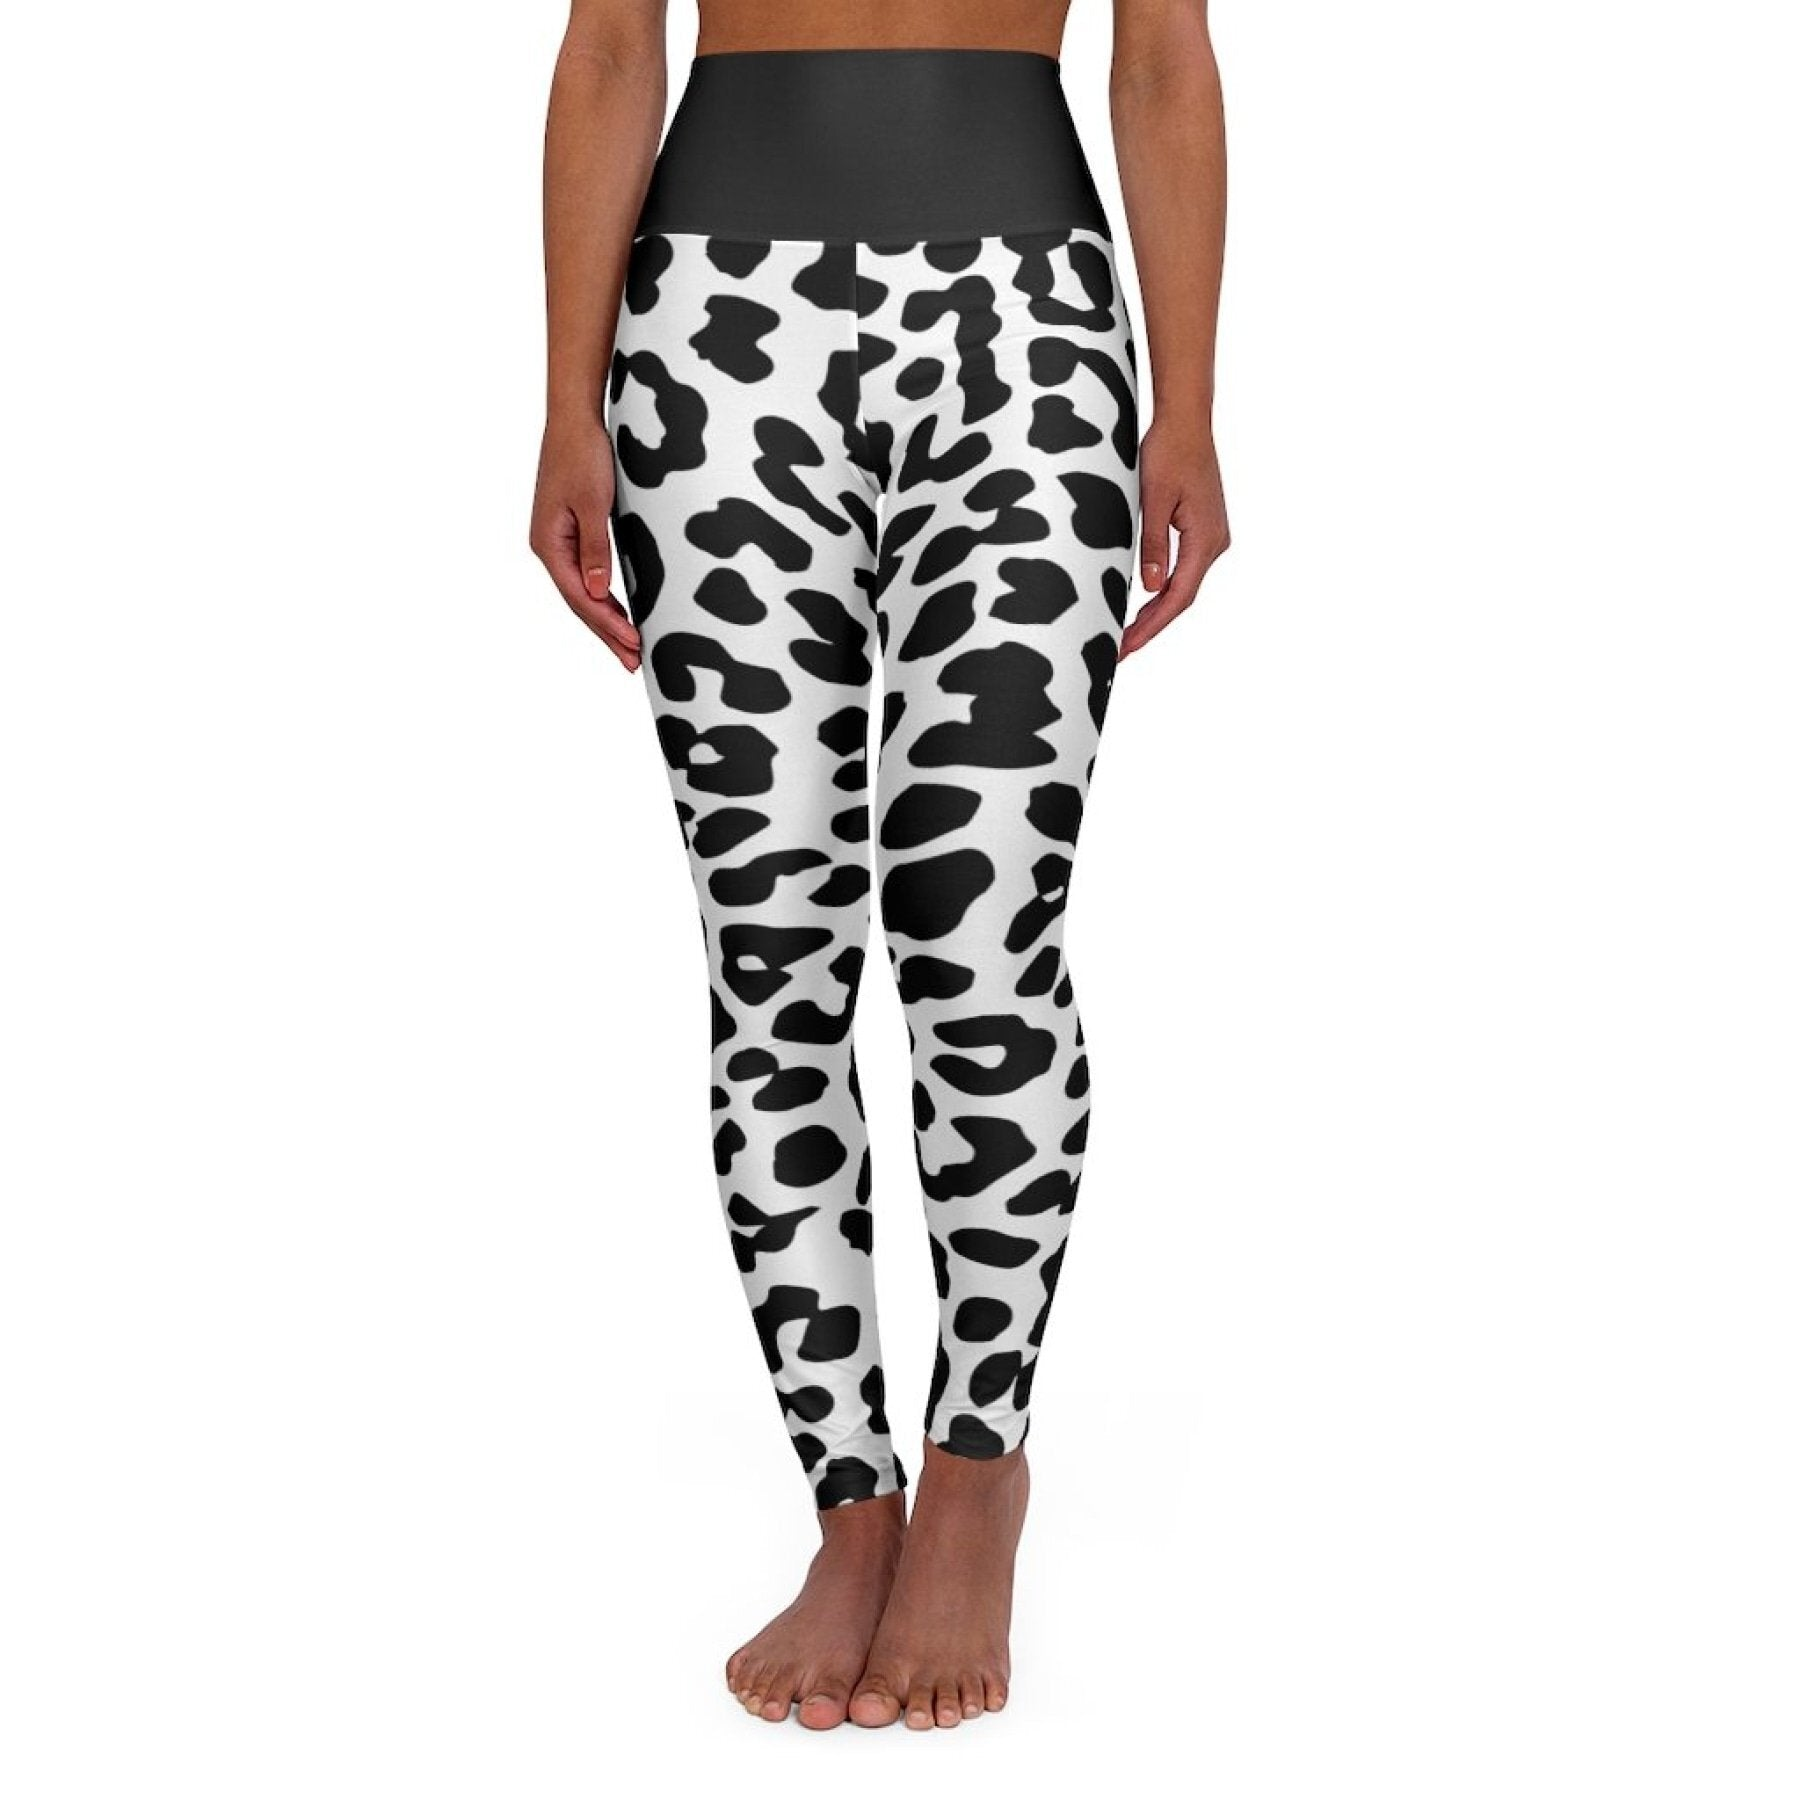 High Waisted Yoga Leggings, Black and White Two-Tone Leopard Style Pants